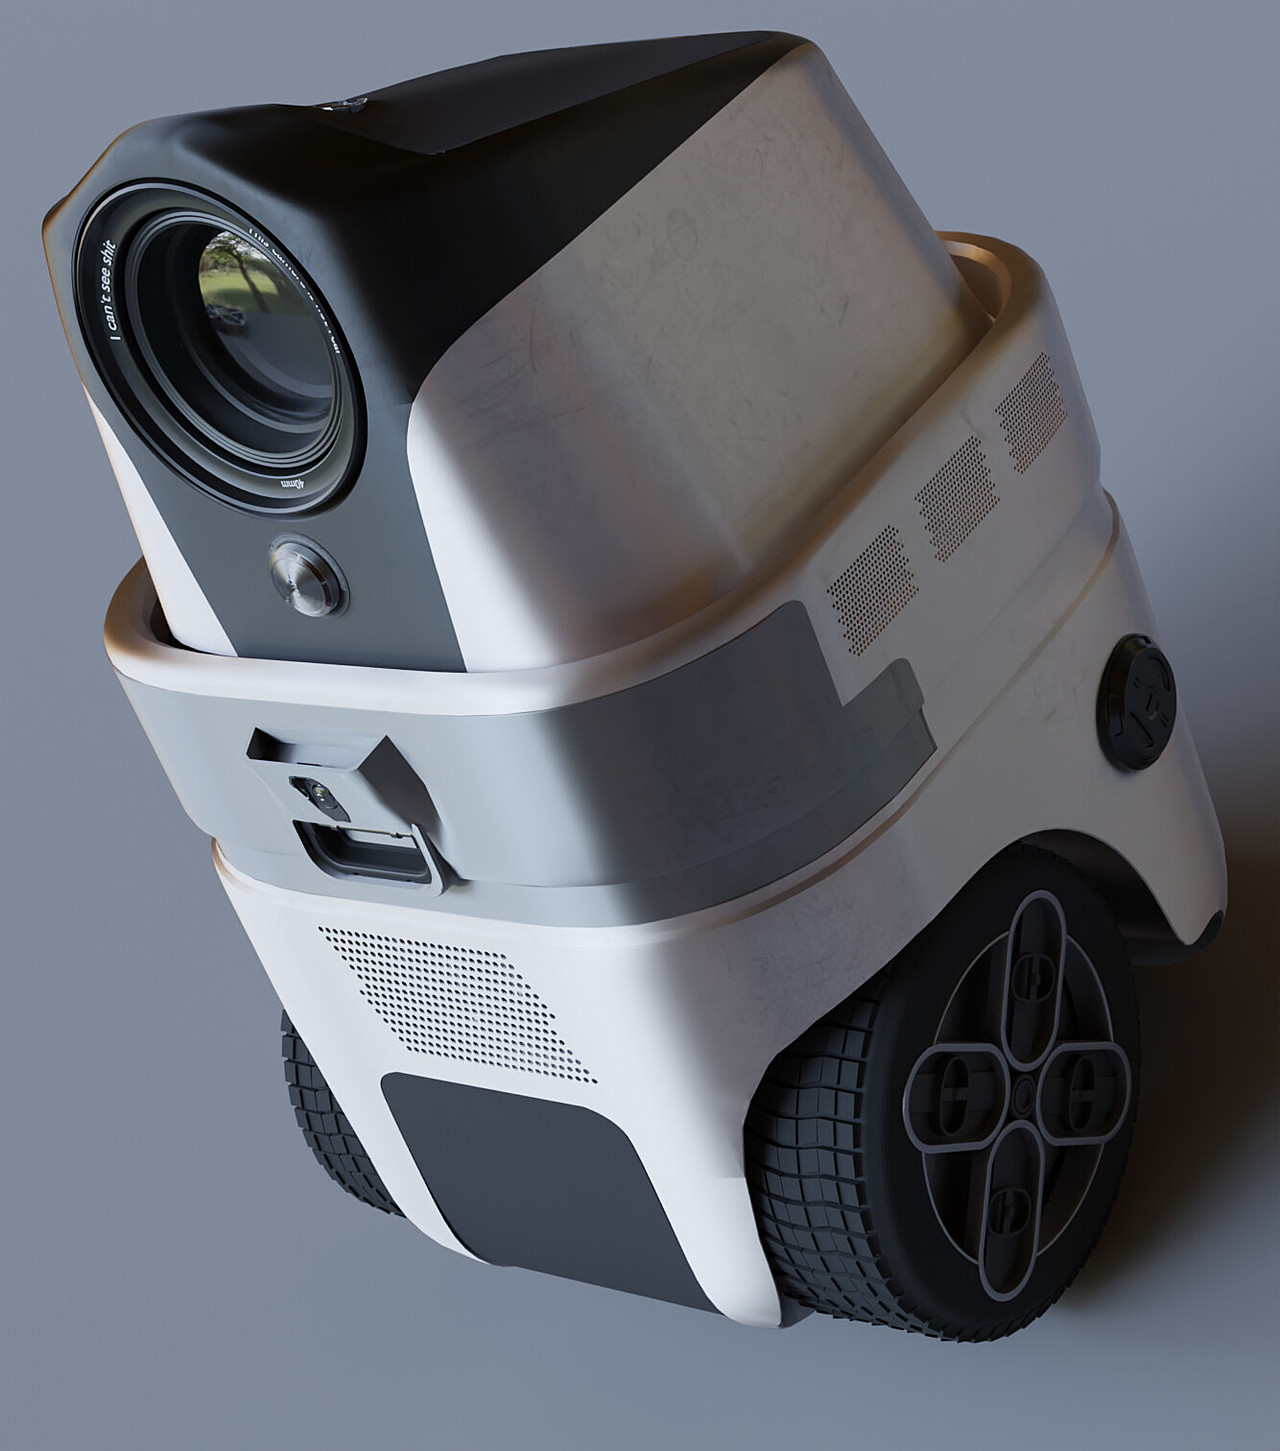 Airfryer from the future